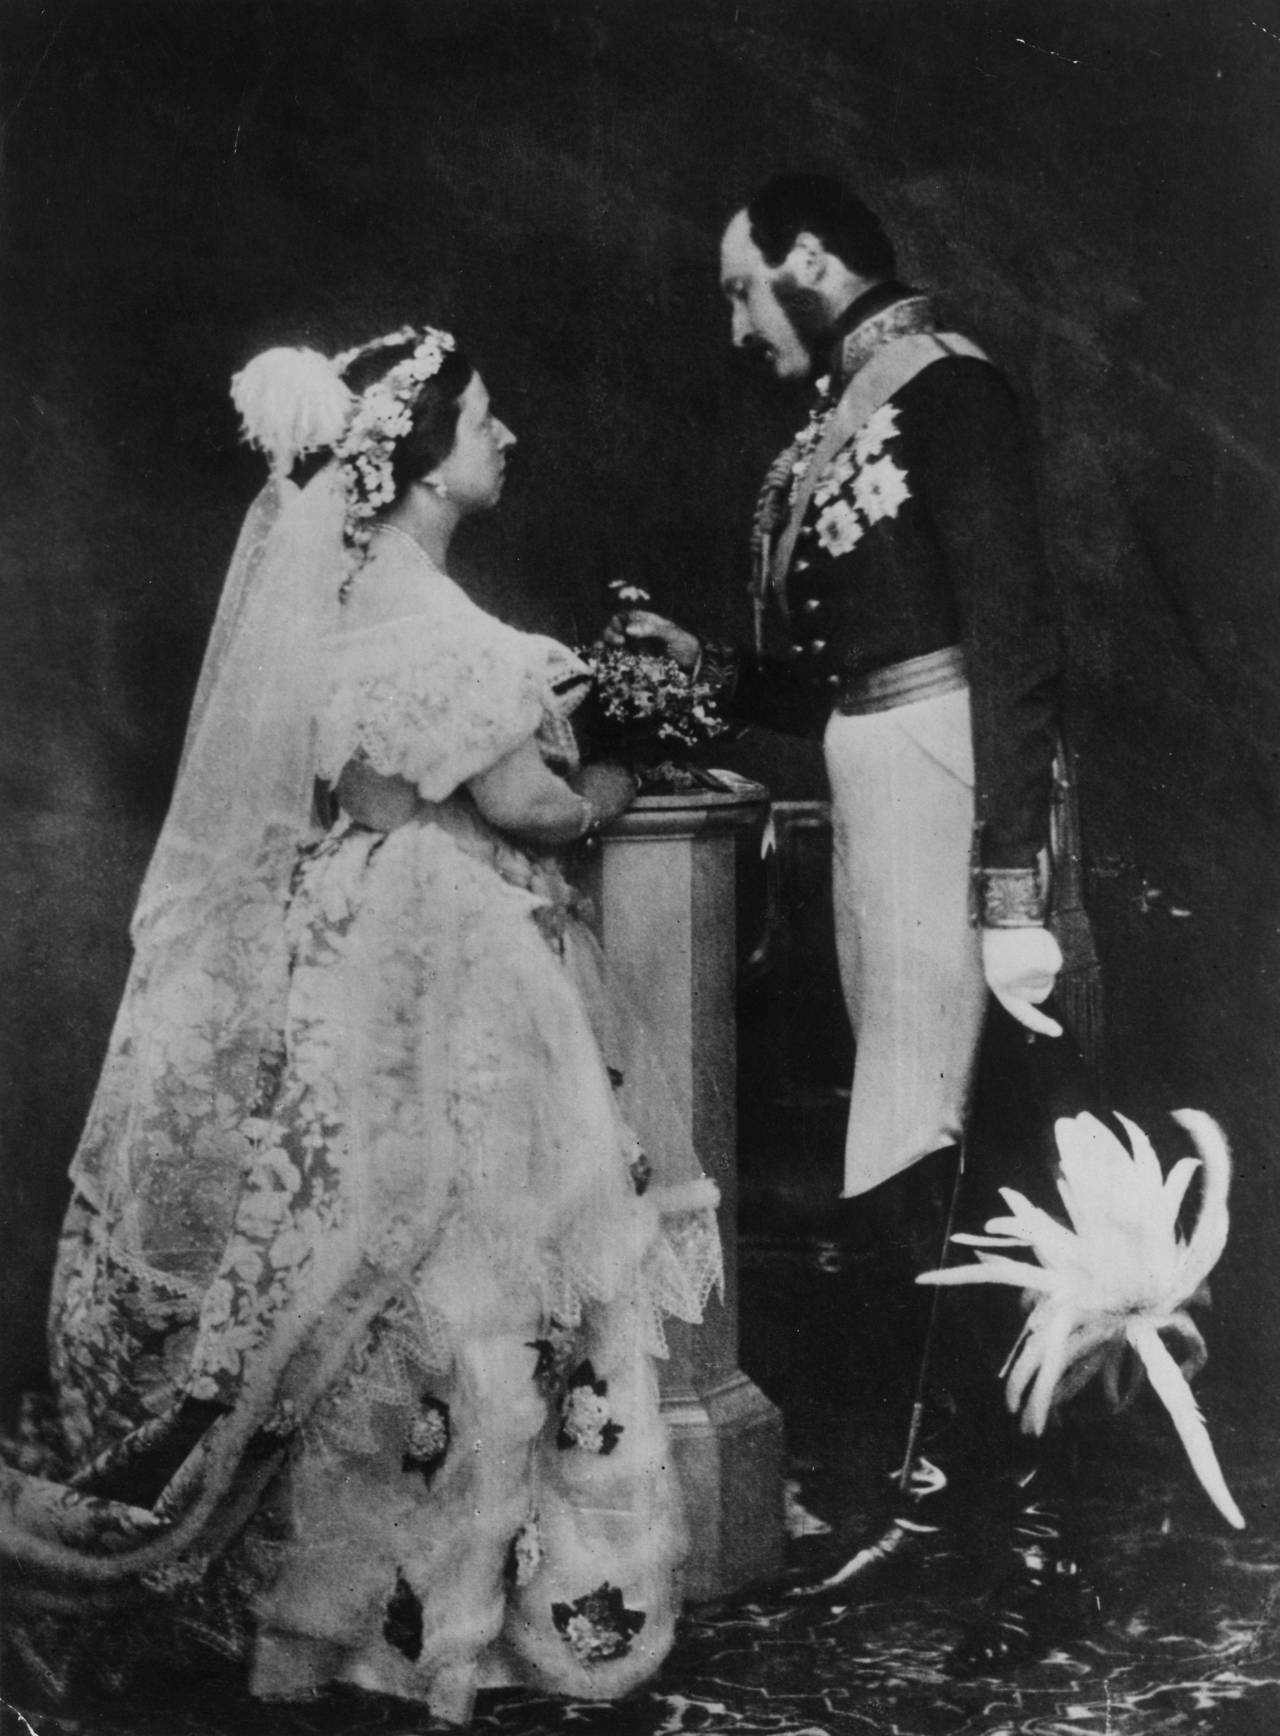 Queen Victoria and Prince Albert re-enact their wedding ceremony, around 14 years later. C.1854.